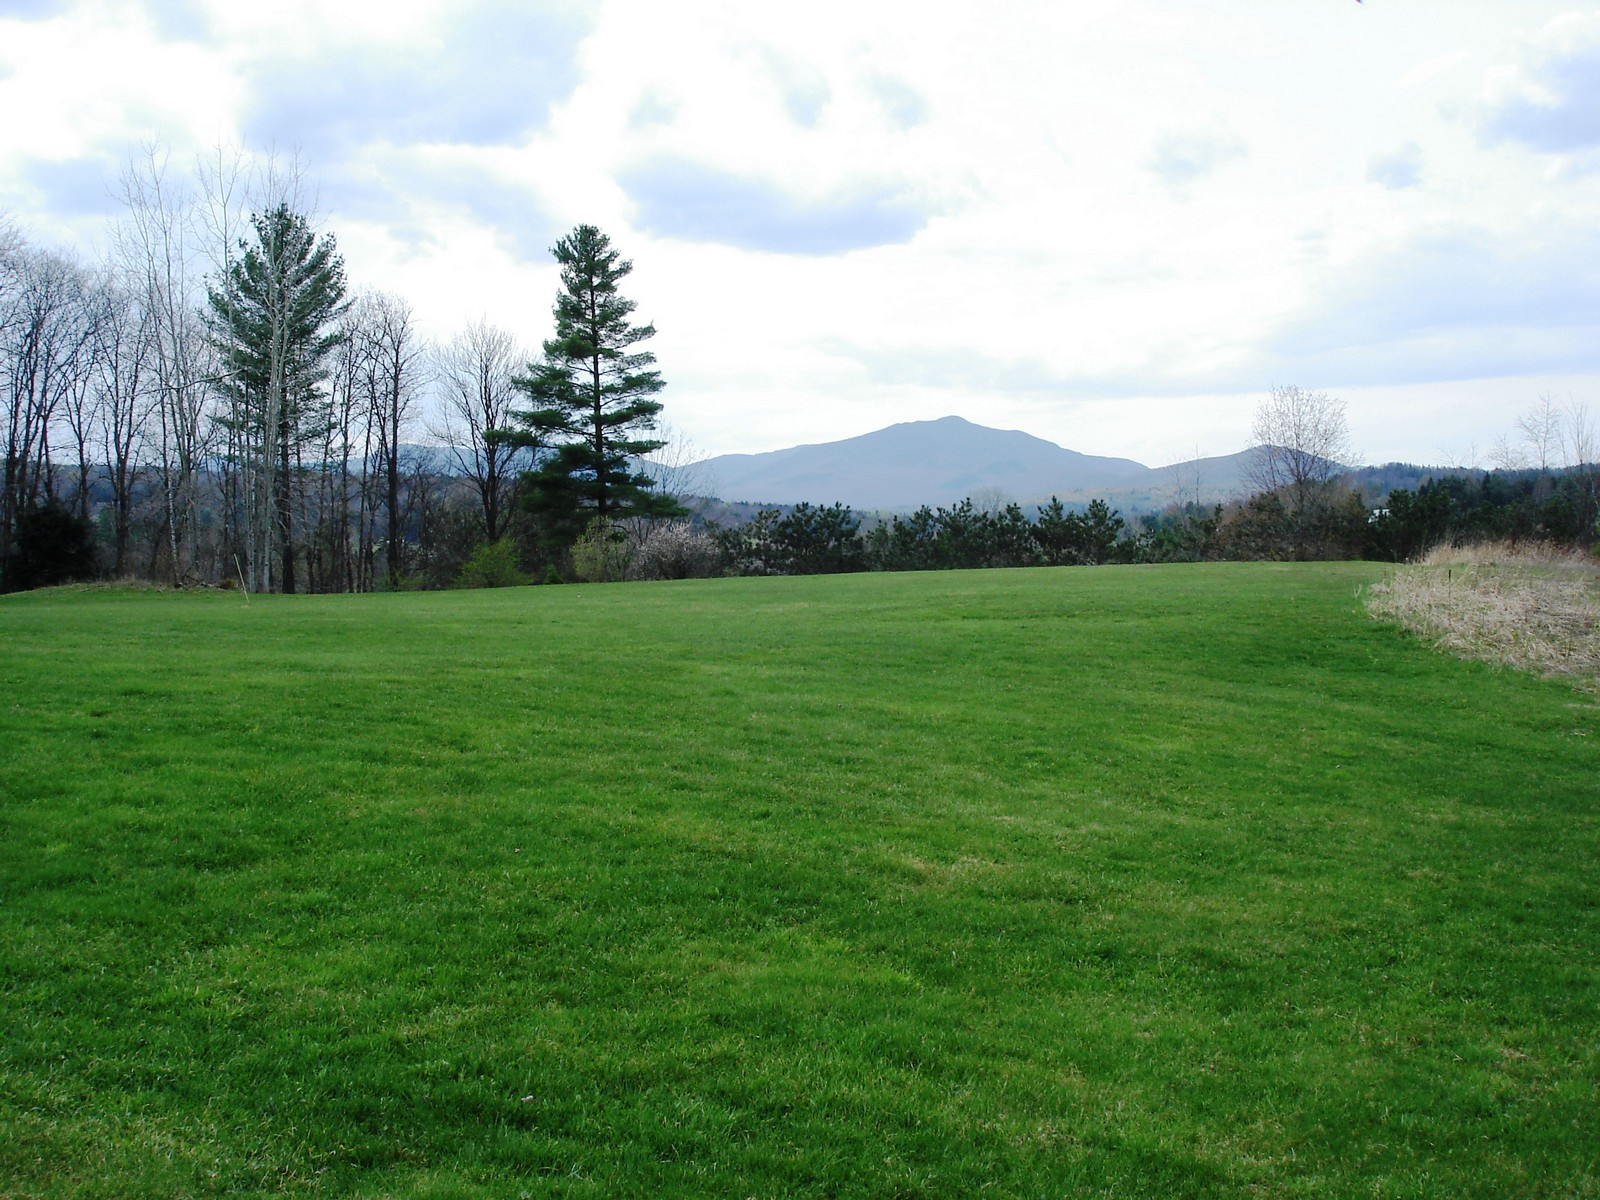 Terreno por un Venta en Mountain View Acres Belanger Lane Lot 1 Morristown, Vermont 05661 Estados Unidos